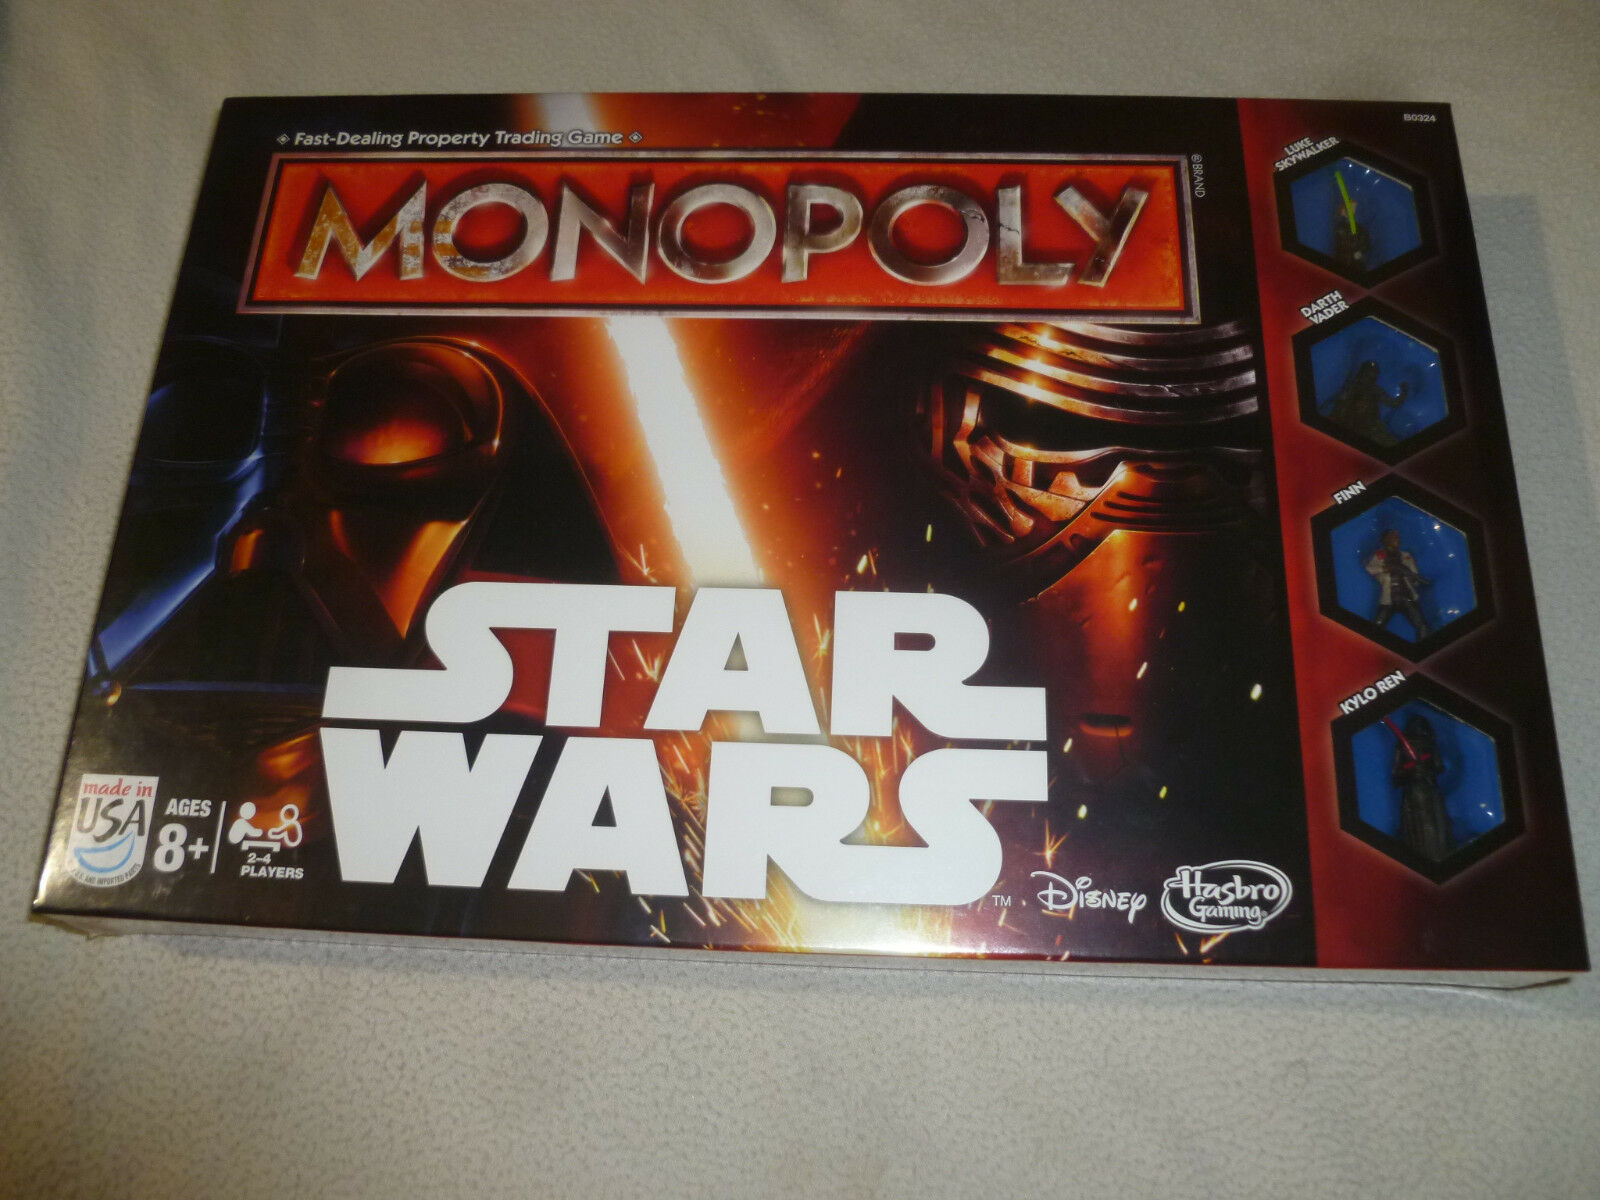 New monopoly star wars force awakens board game parker brothers 2015 kylo ren